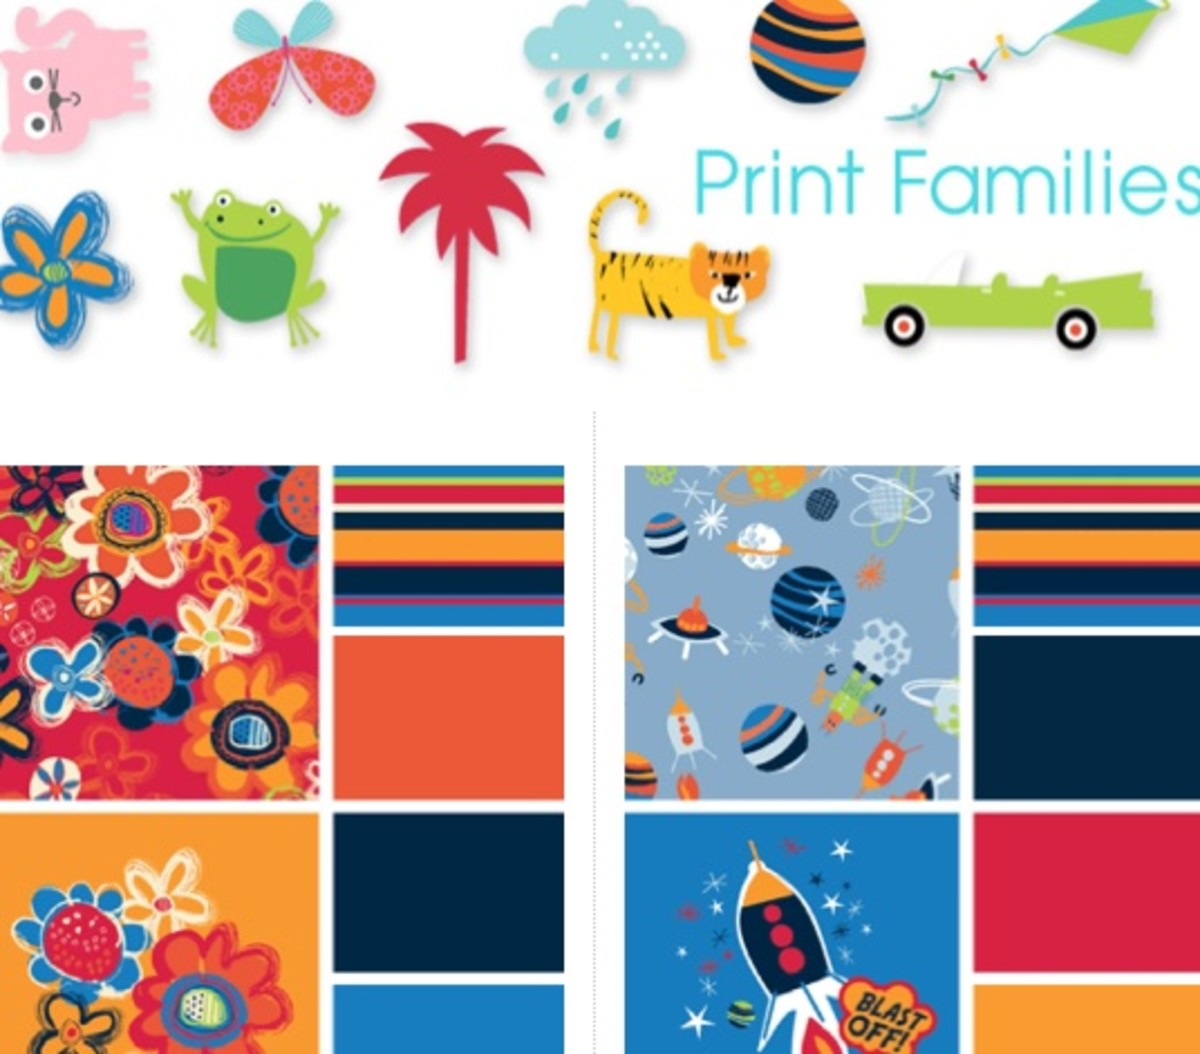 print families